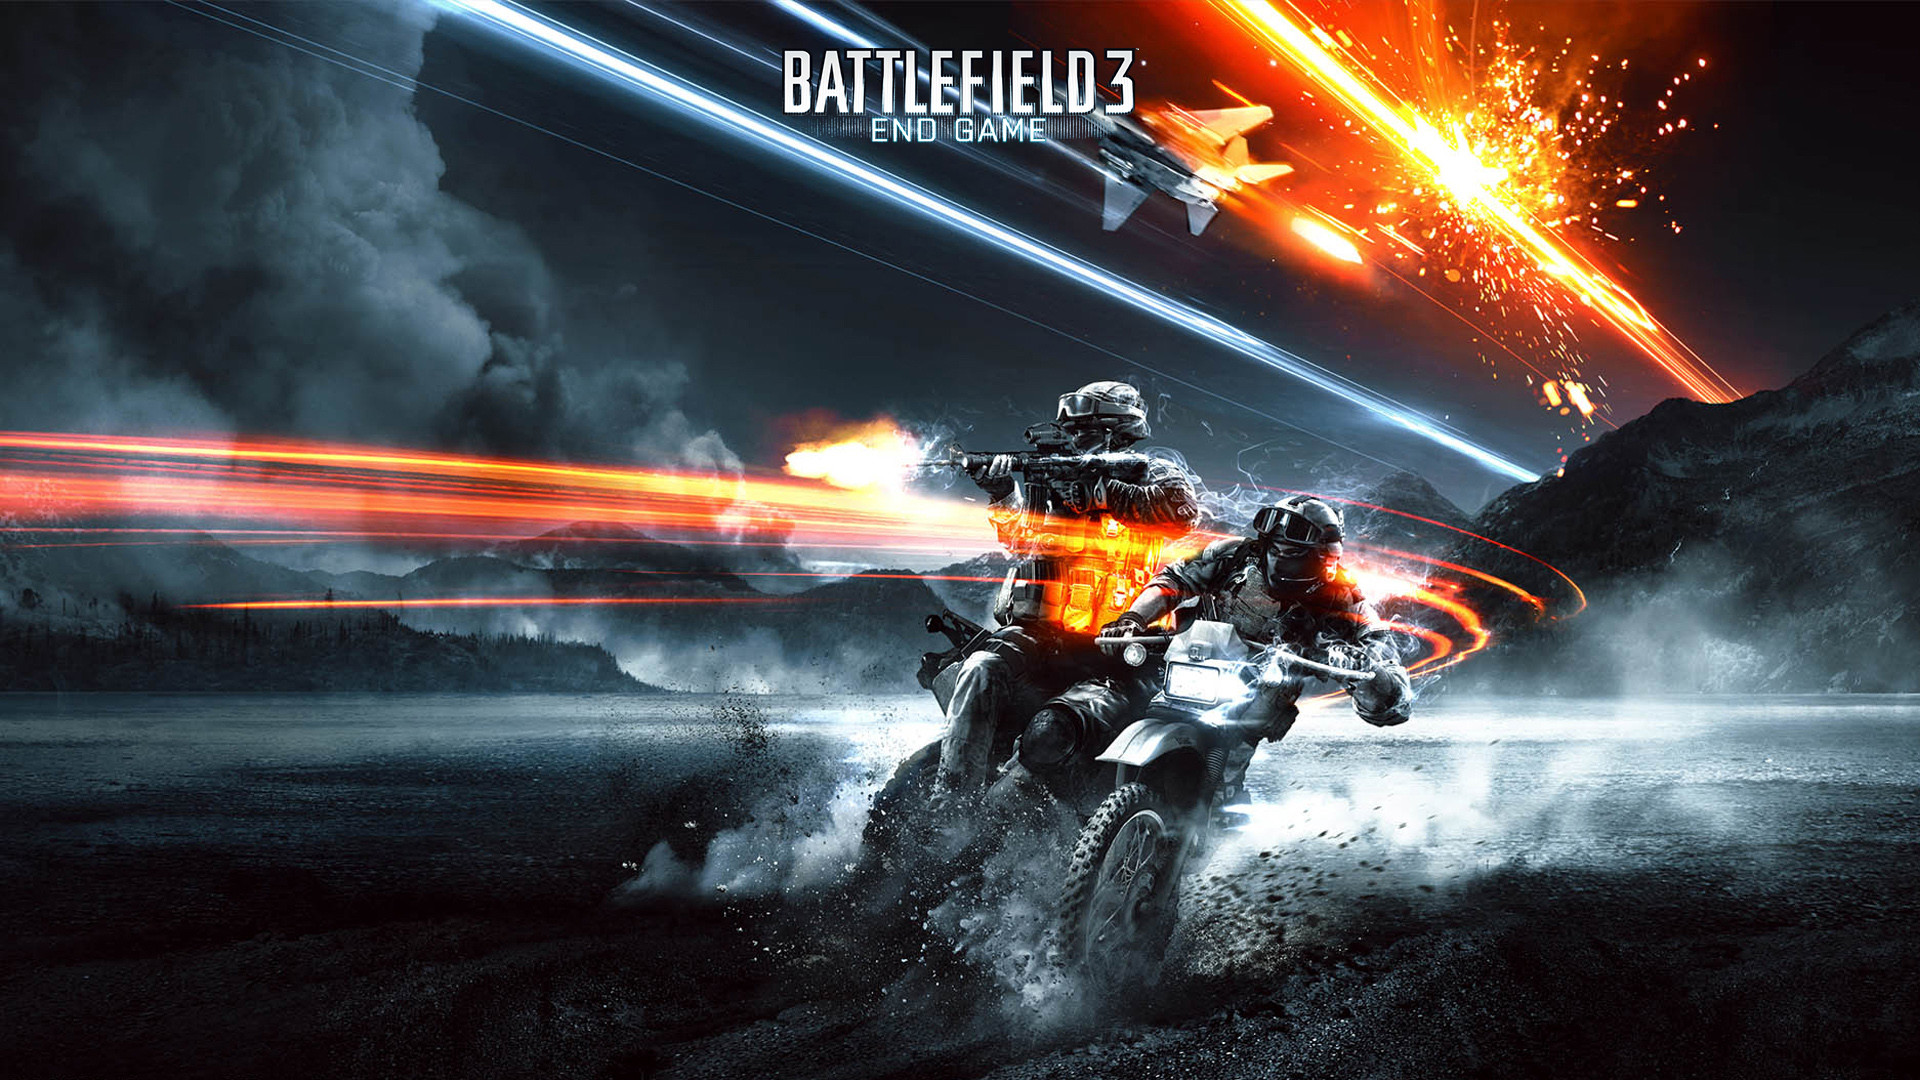 1920x1080 Battlefield 3 Bike Action In HD Quality Picture | Game HD Wallpaper